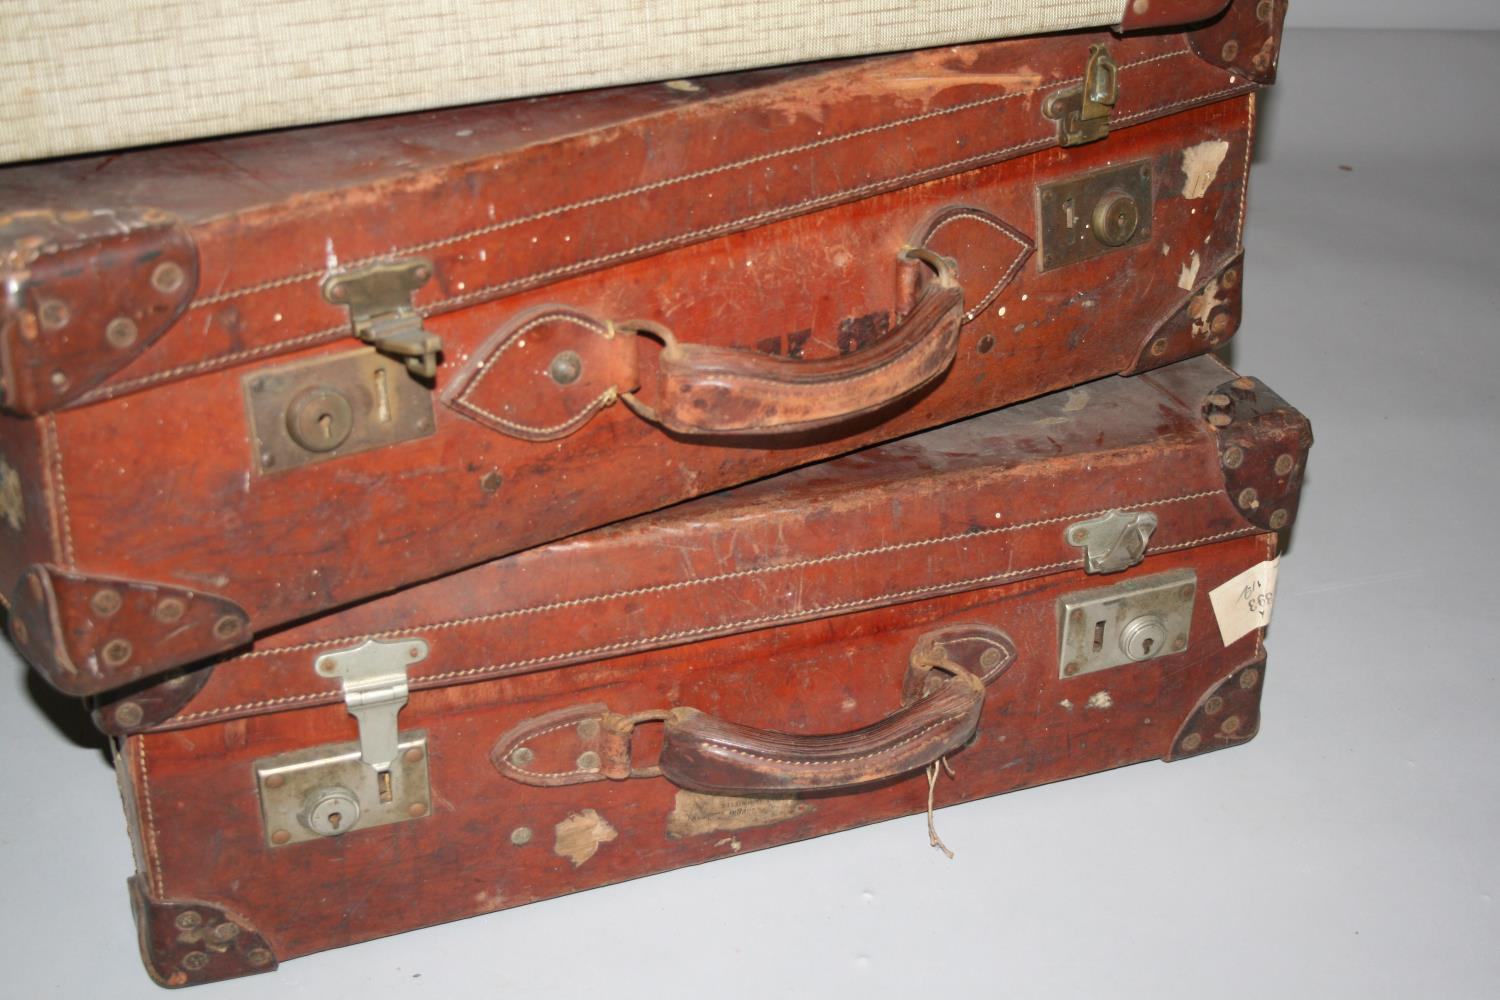 Four vintage leather suitcases, with compass, blade sharpener and wood plain. - Image 3 of 7